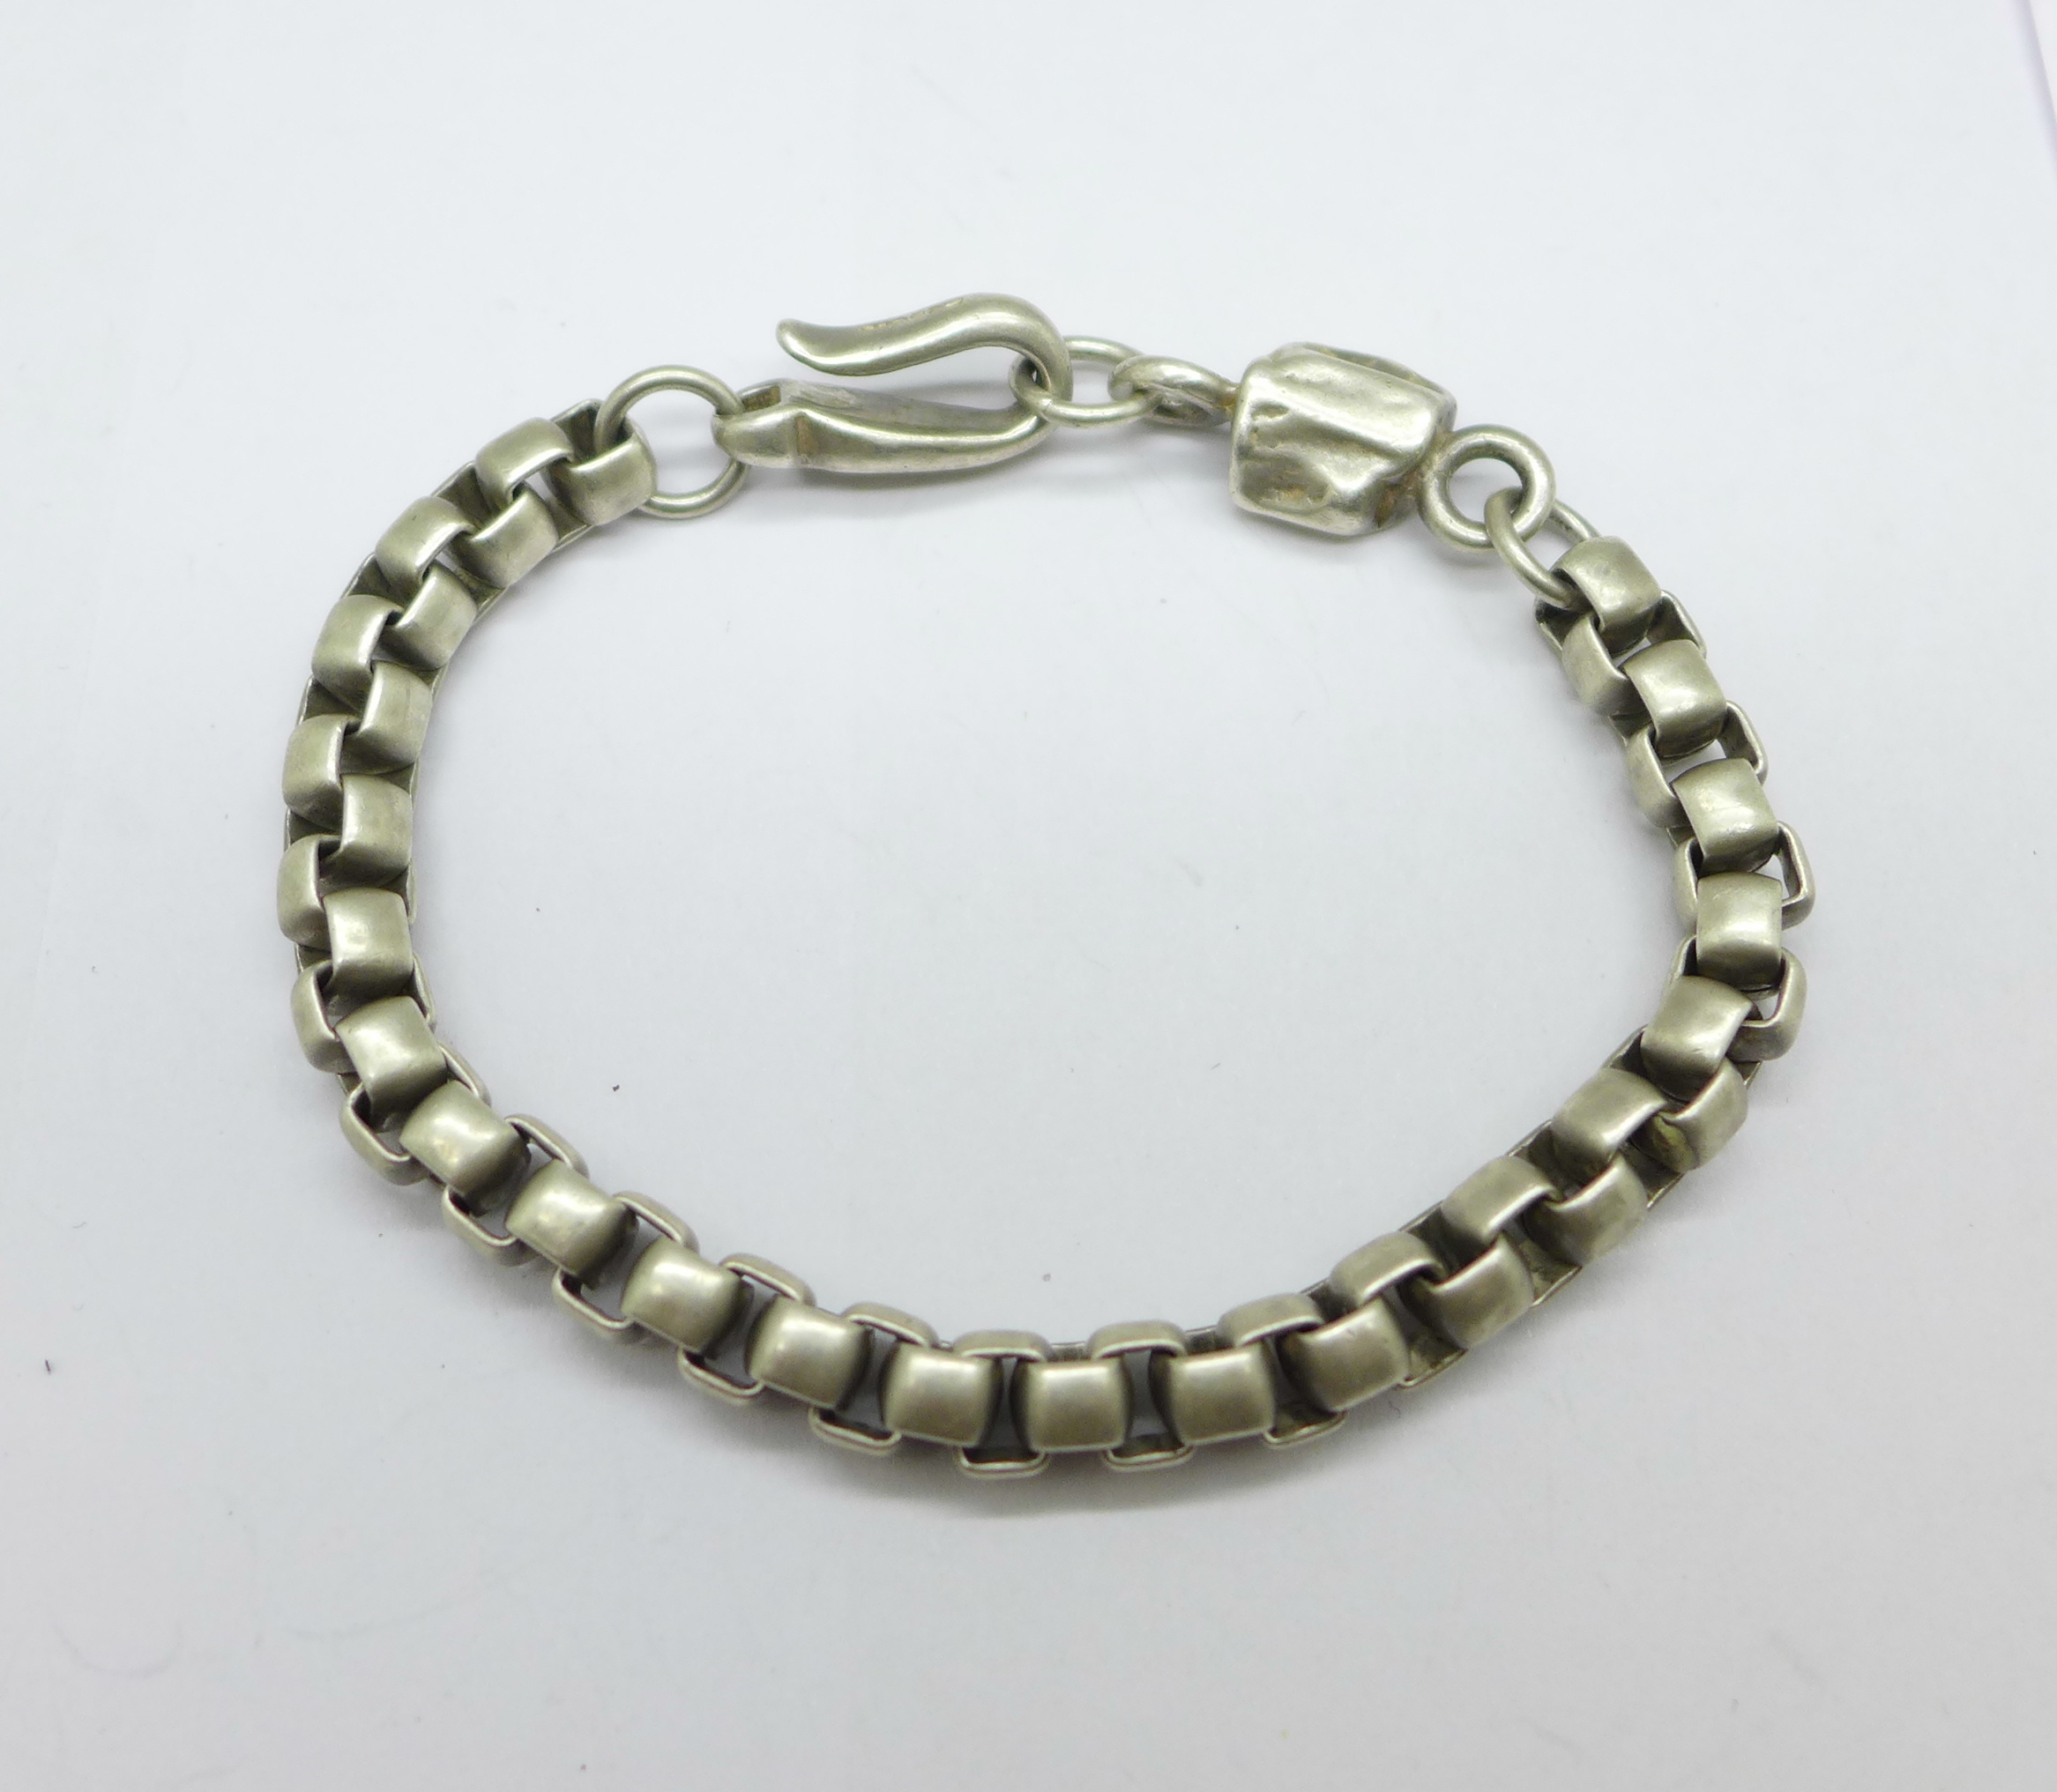 A Paul Smith silver chain with 'nugget' detail, 46g